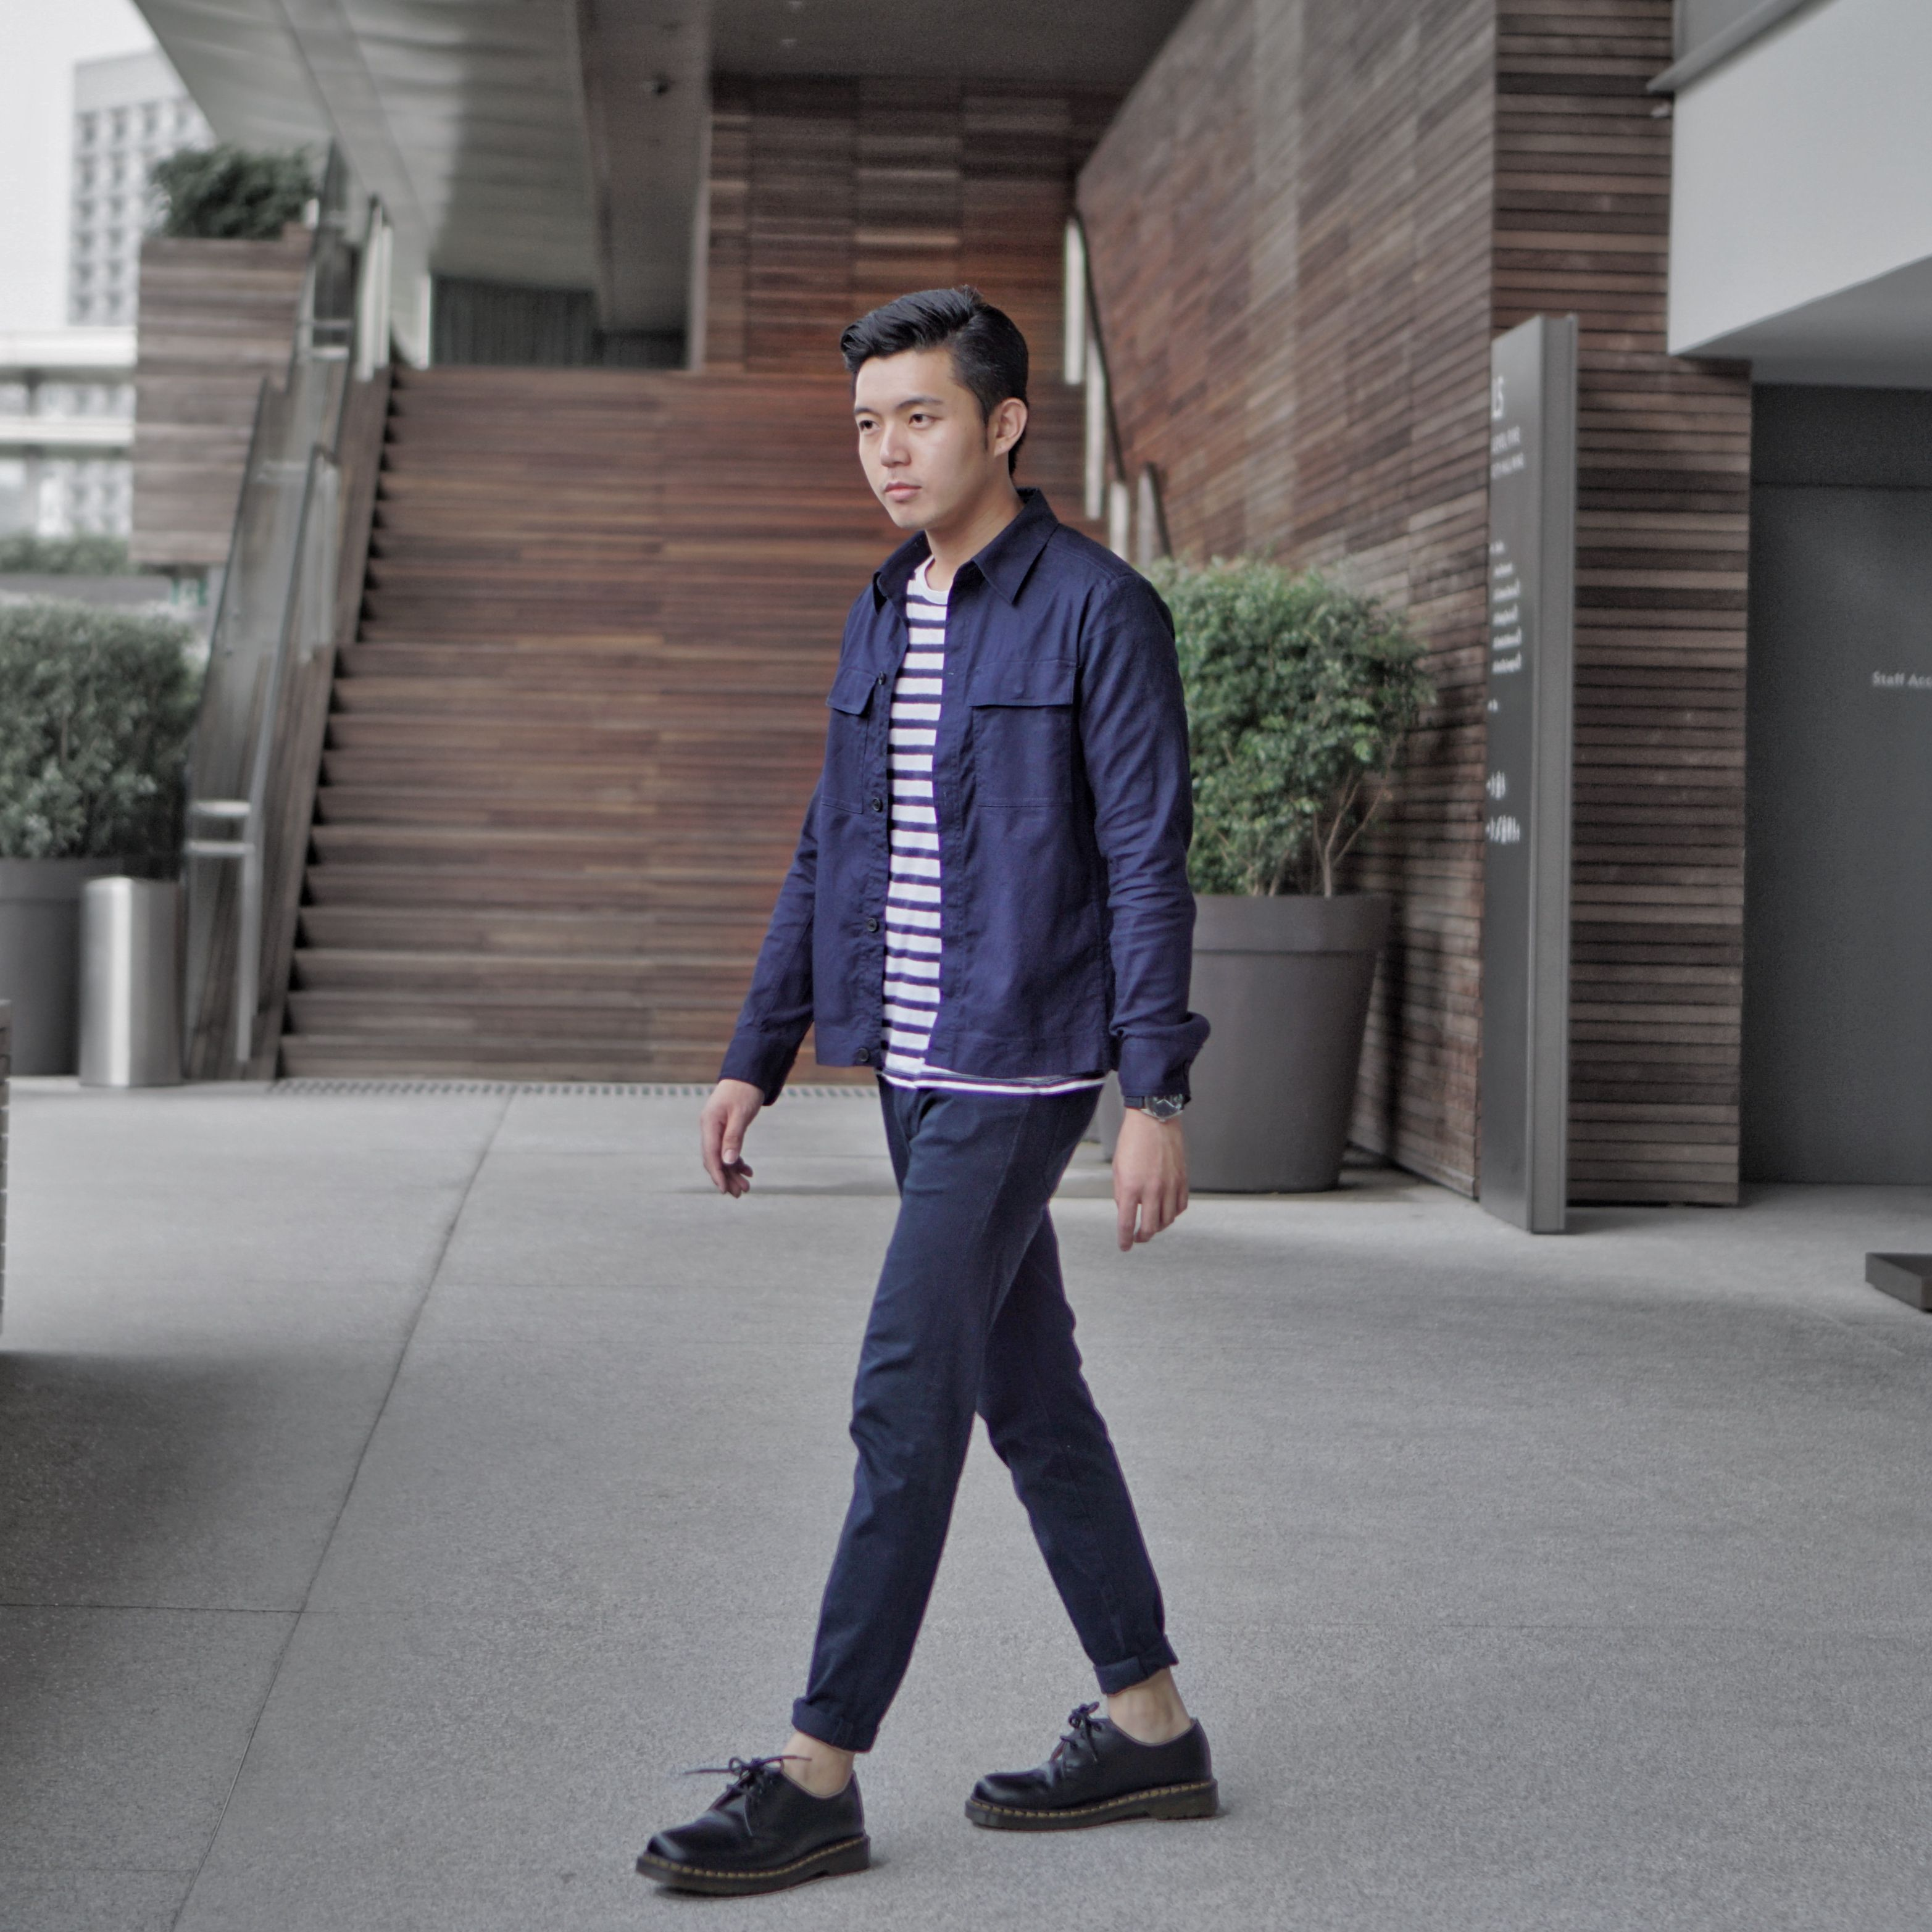 OOTD Men Outfit Ideas Singapore Hm Jacket Navy Blue Uniqlo Jeans Dr Martens | Clothing ...